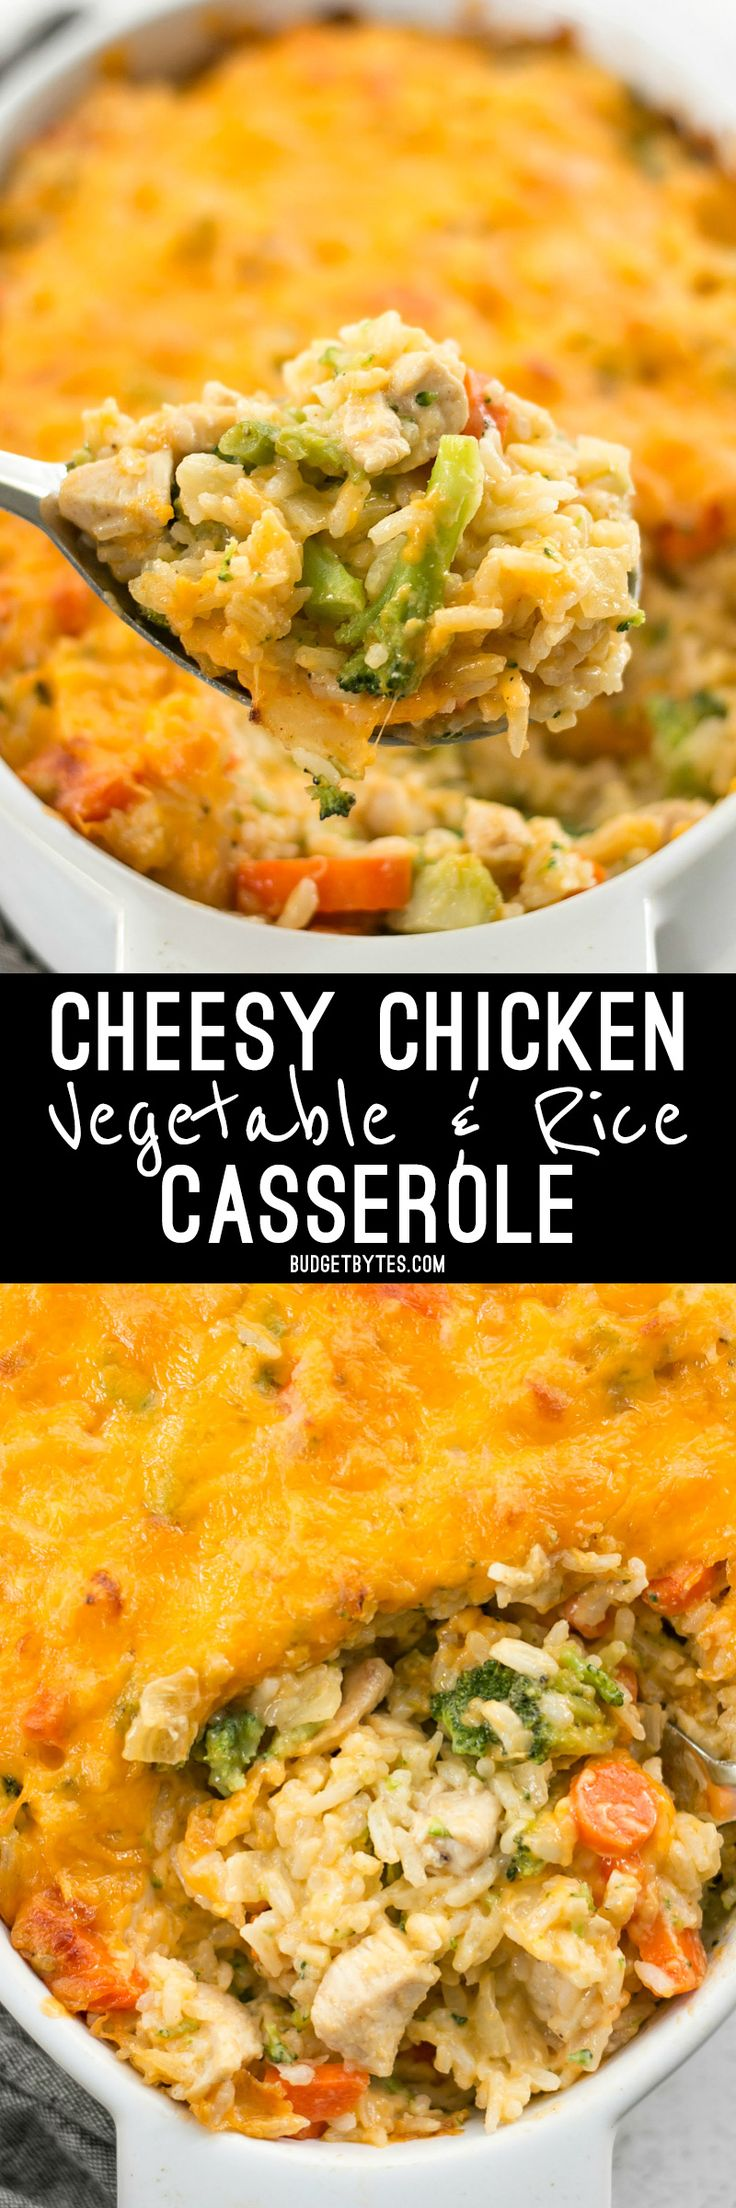 This Cheesy Chicken Vegetable and Rice Casserole is everything your comfort food dreams are made of. @budgetbytes